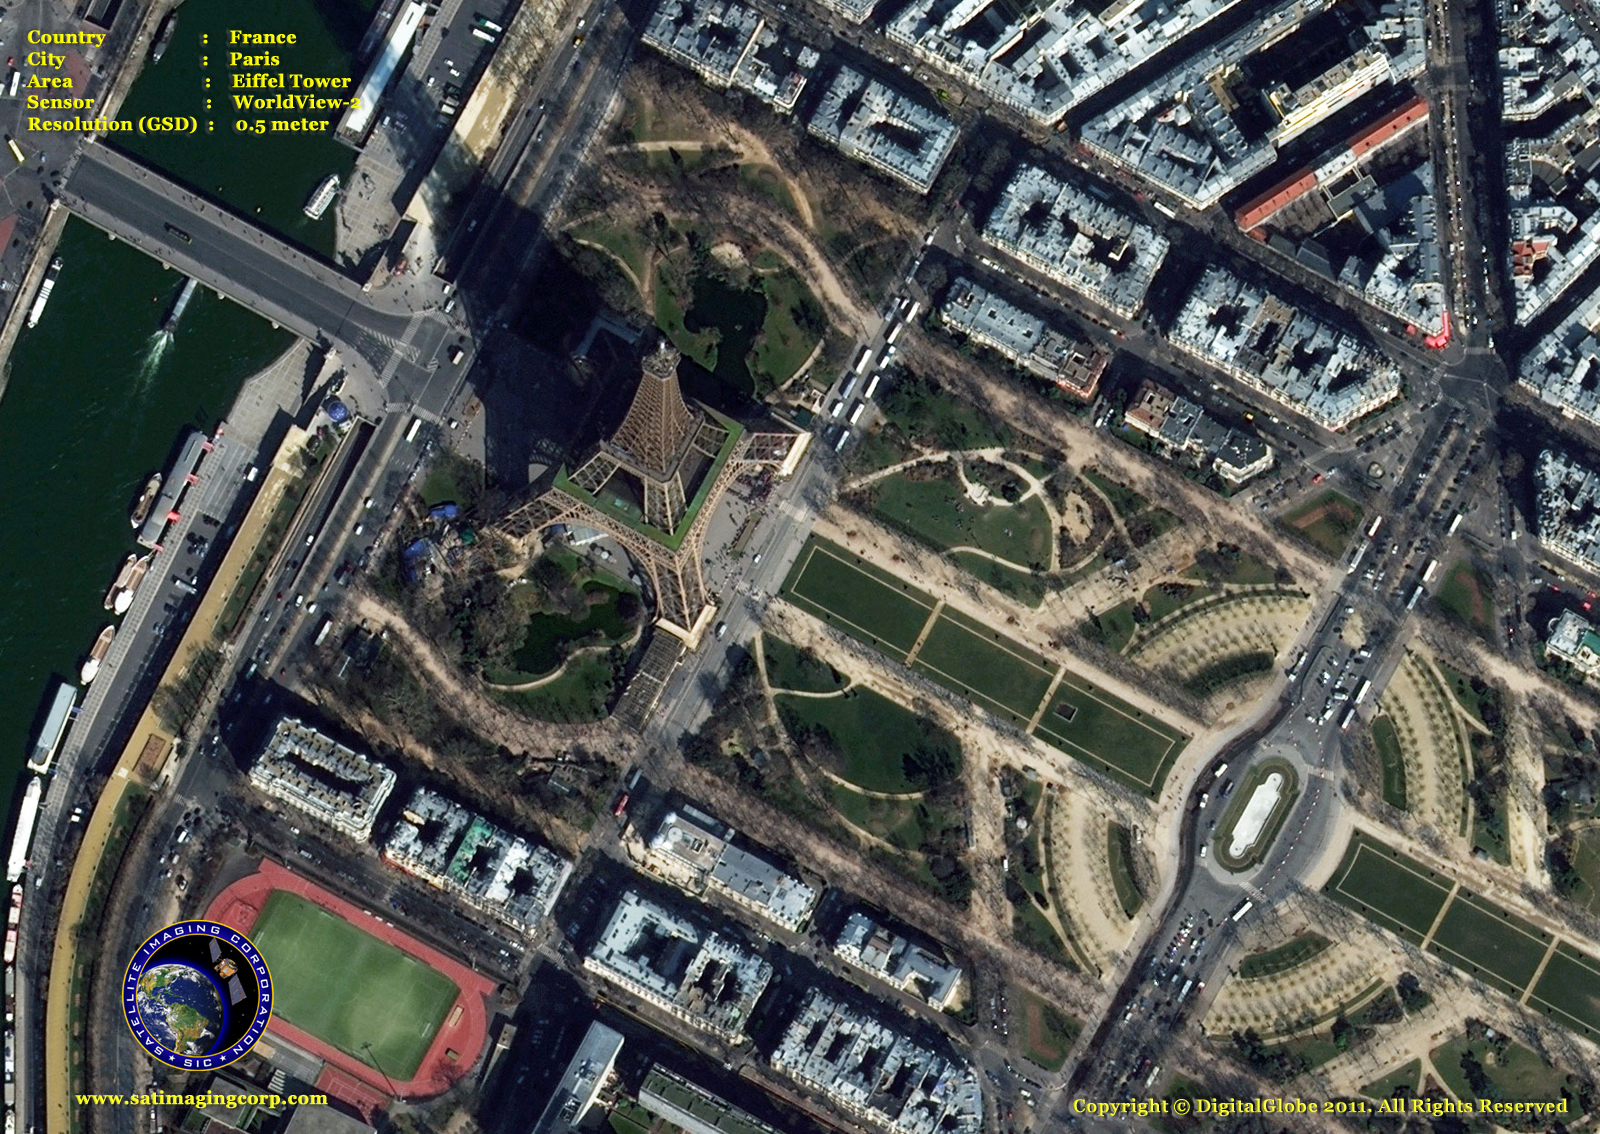 Worldview 2 Satellite Image Of The Eiffel Tower